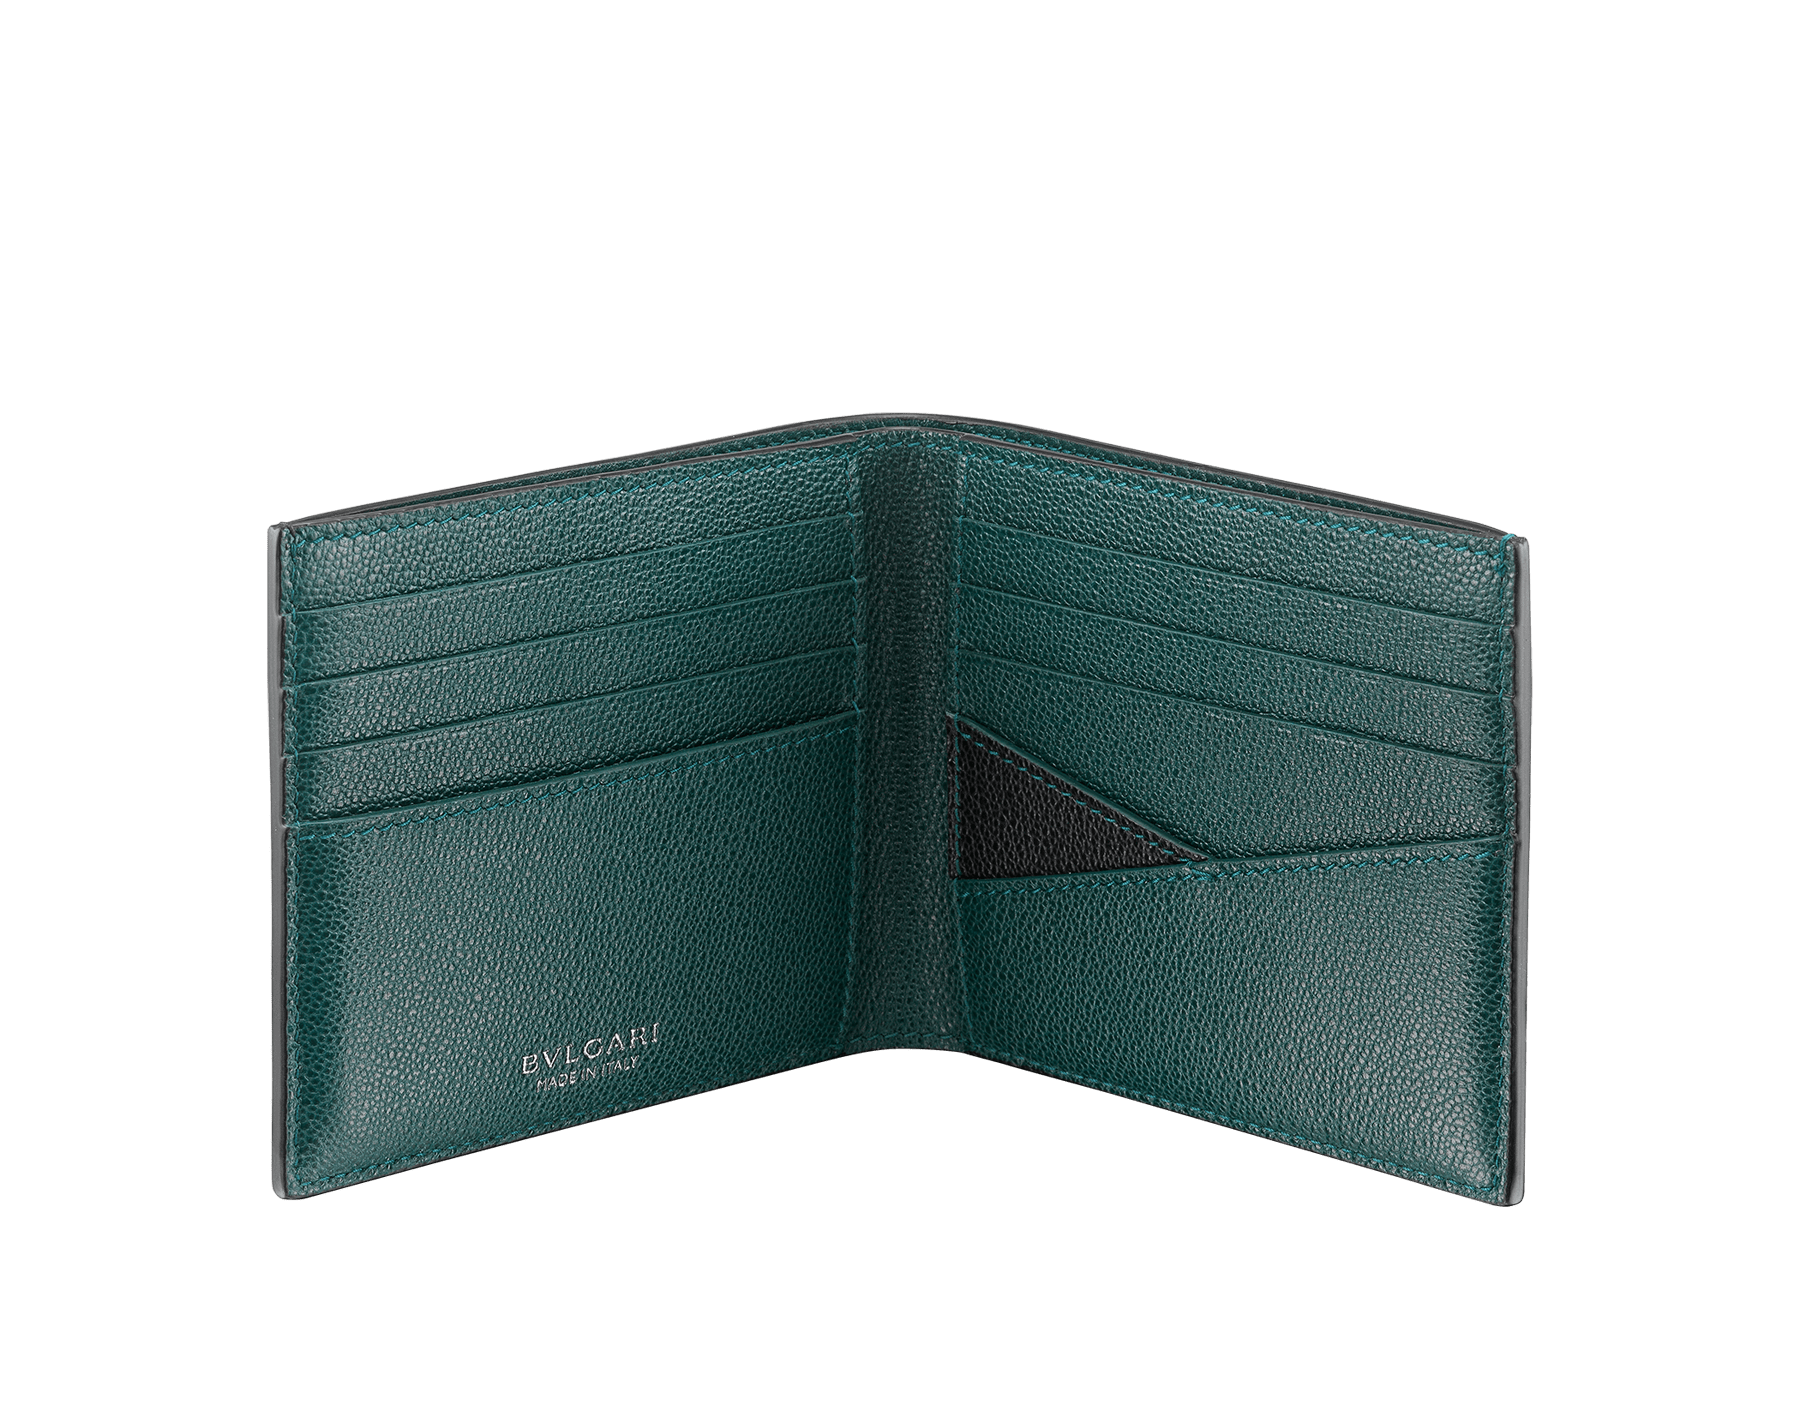 """""""BVLGARI BVLGARI"""" men's compact wallet in black and Forest Emerald green """"Urban"""" grain calf leather. Iconic logo embellishment in dark ruthenium-plated brass with black enameling. BBM-WLT2FASYM image 2"""